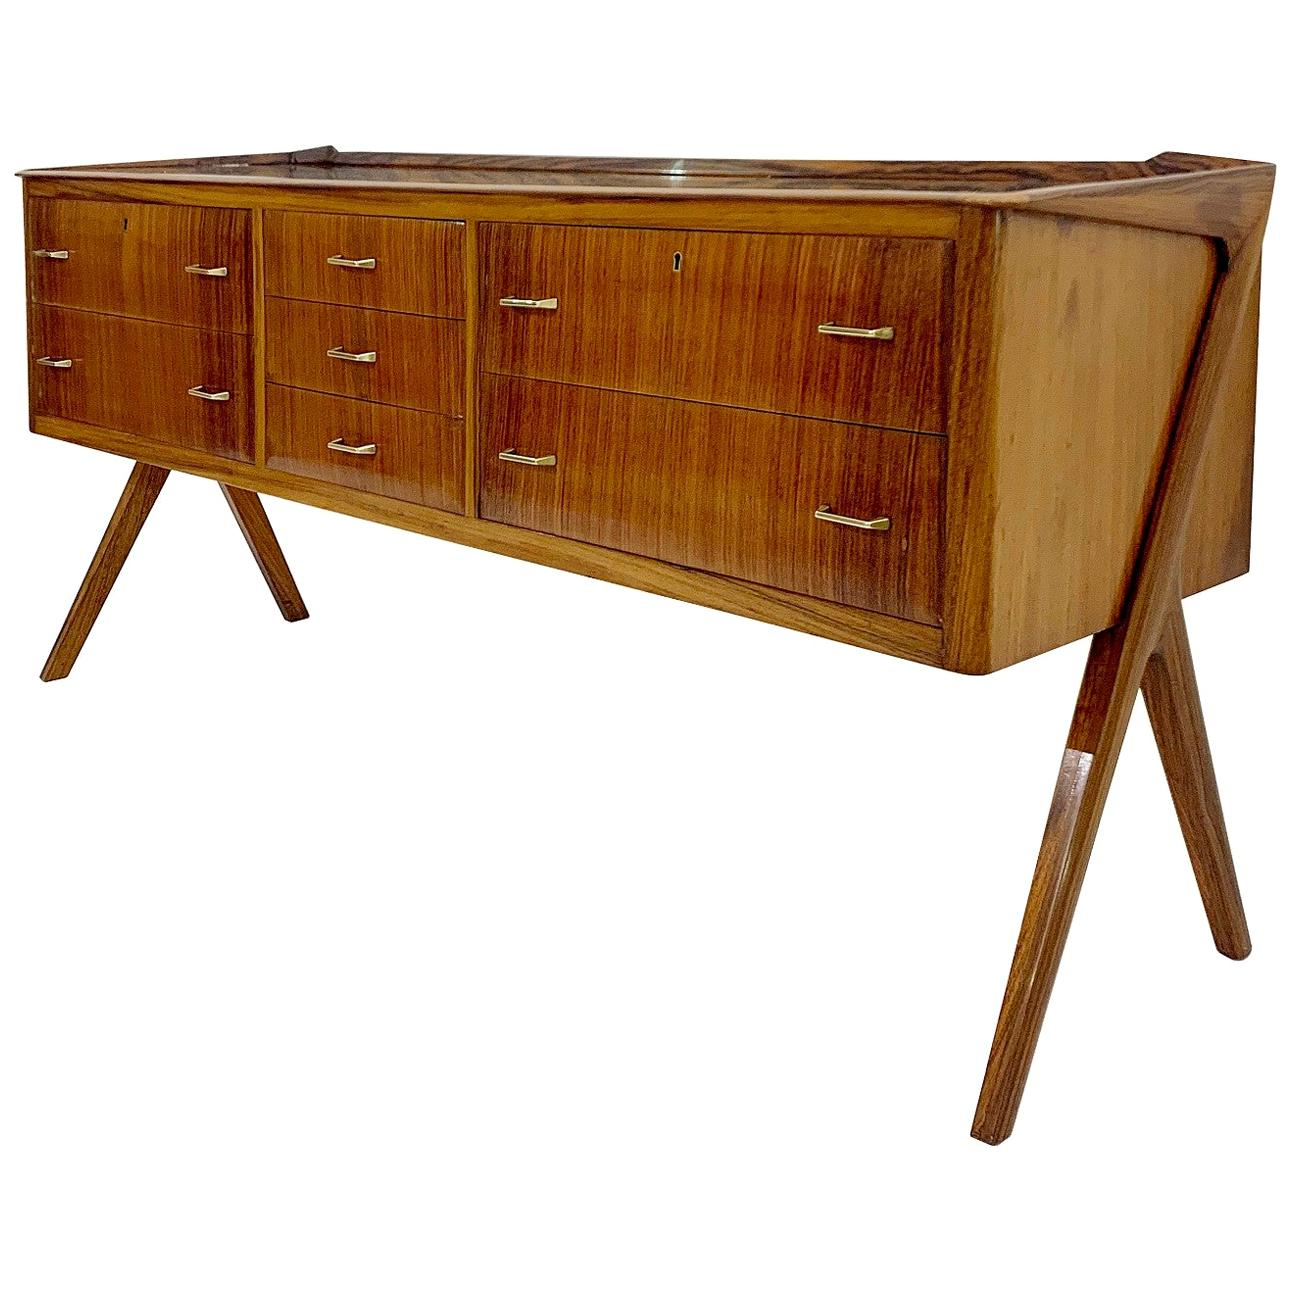 Weinberger Sideboards Pertaining To Most Up To Date Watteeu Case Pieces And Storage Cabinets – 1Stdibs (Gallery 12 of 20)